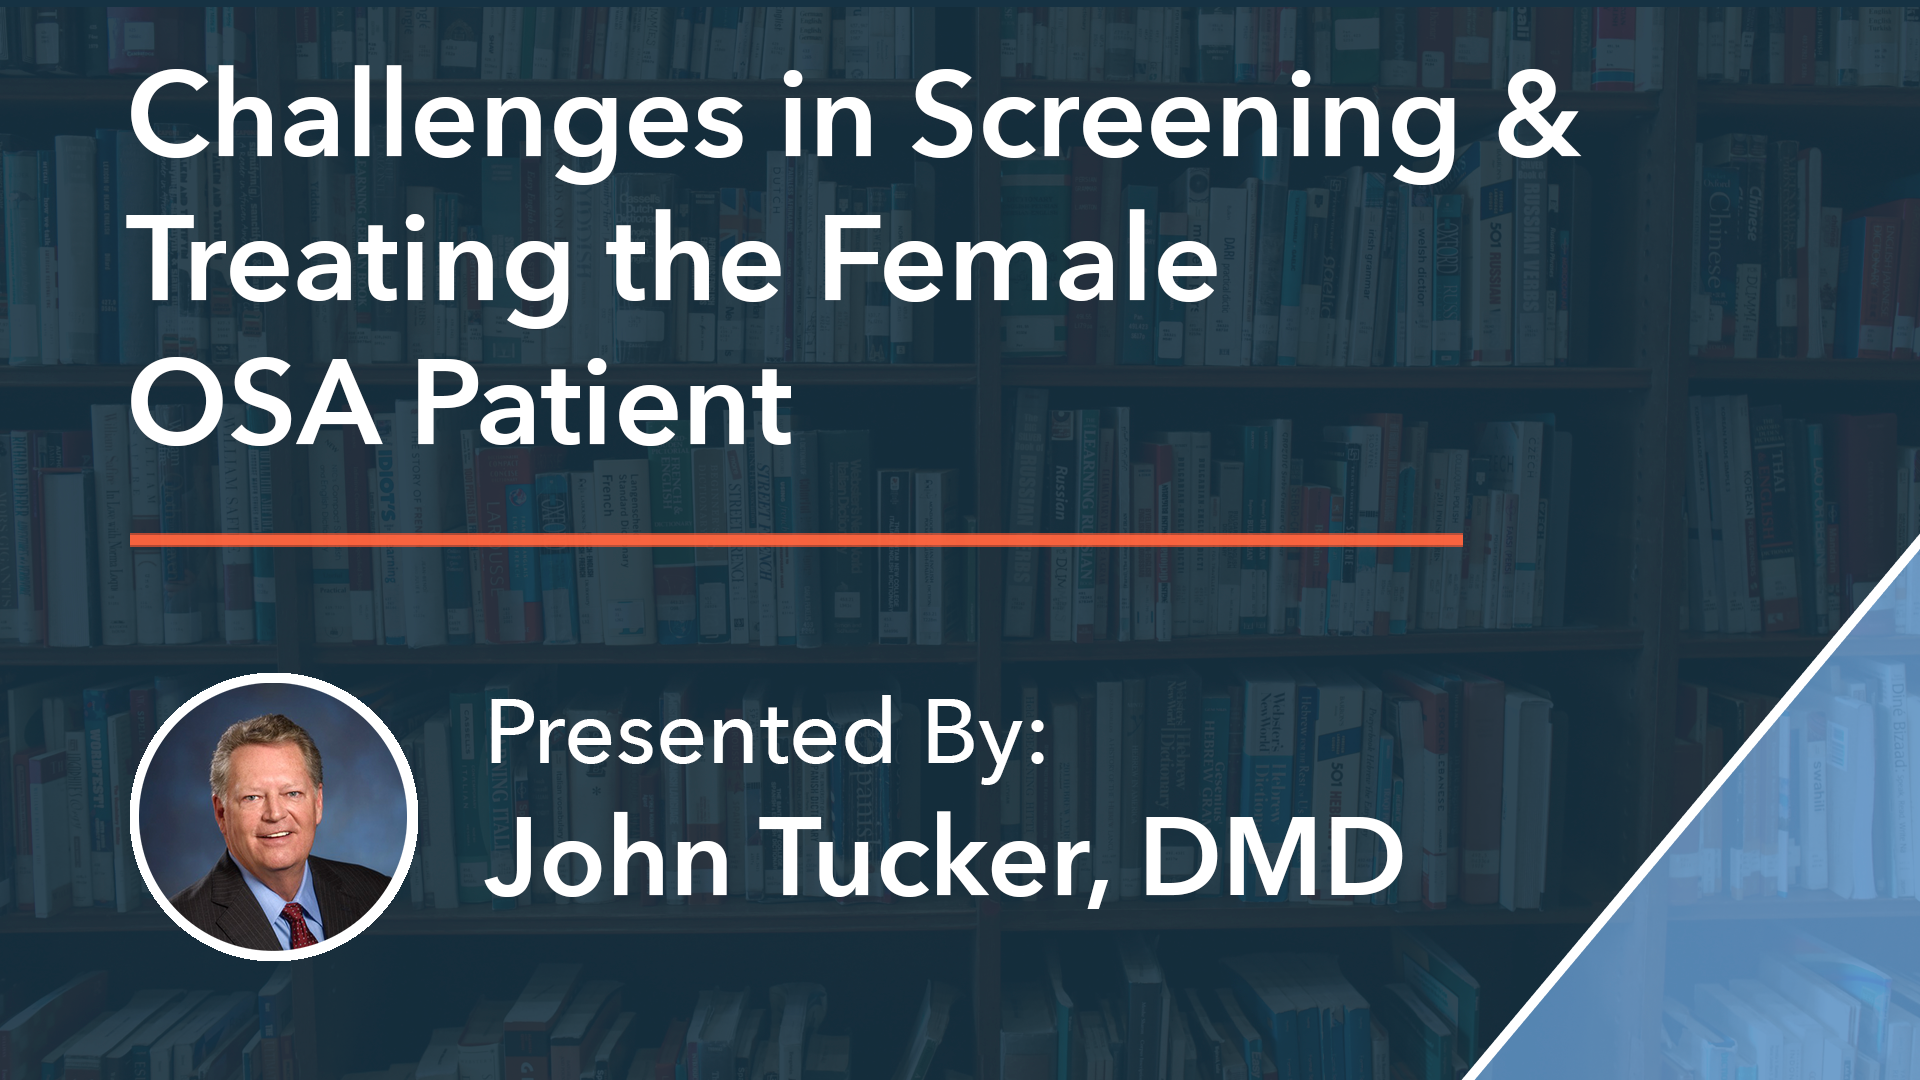 Challenges in Screening & Treating the Female OSA Patient Dr John Tucker